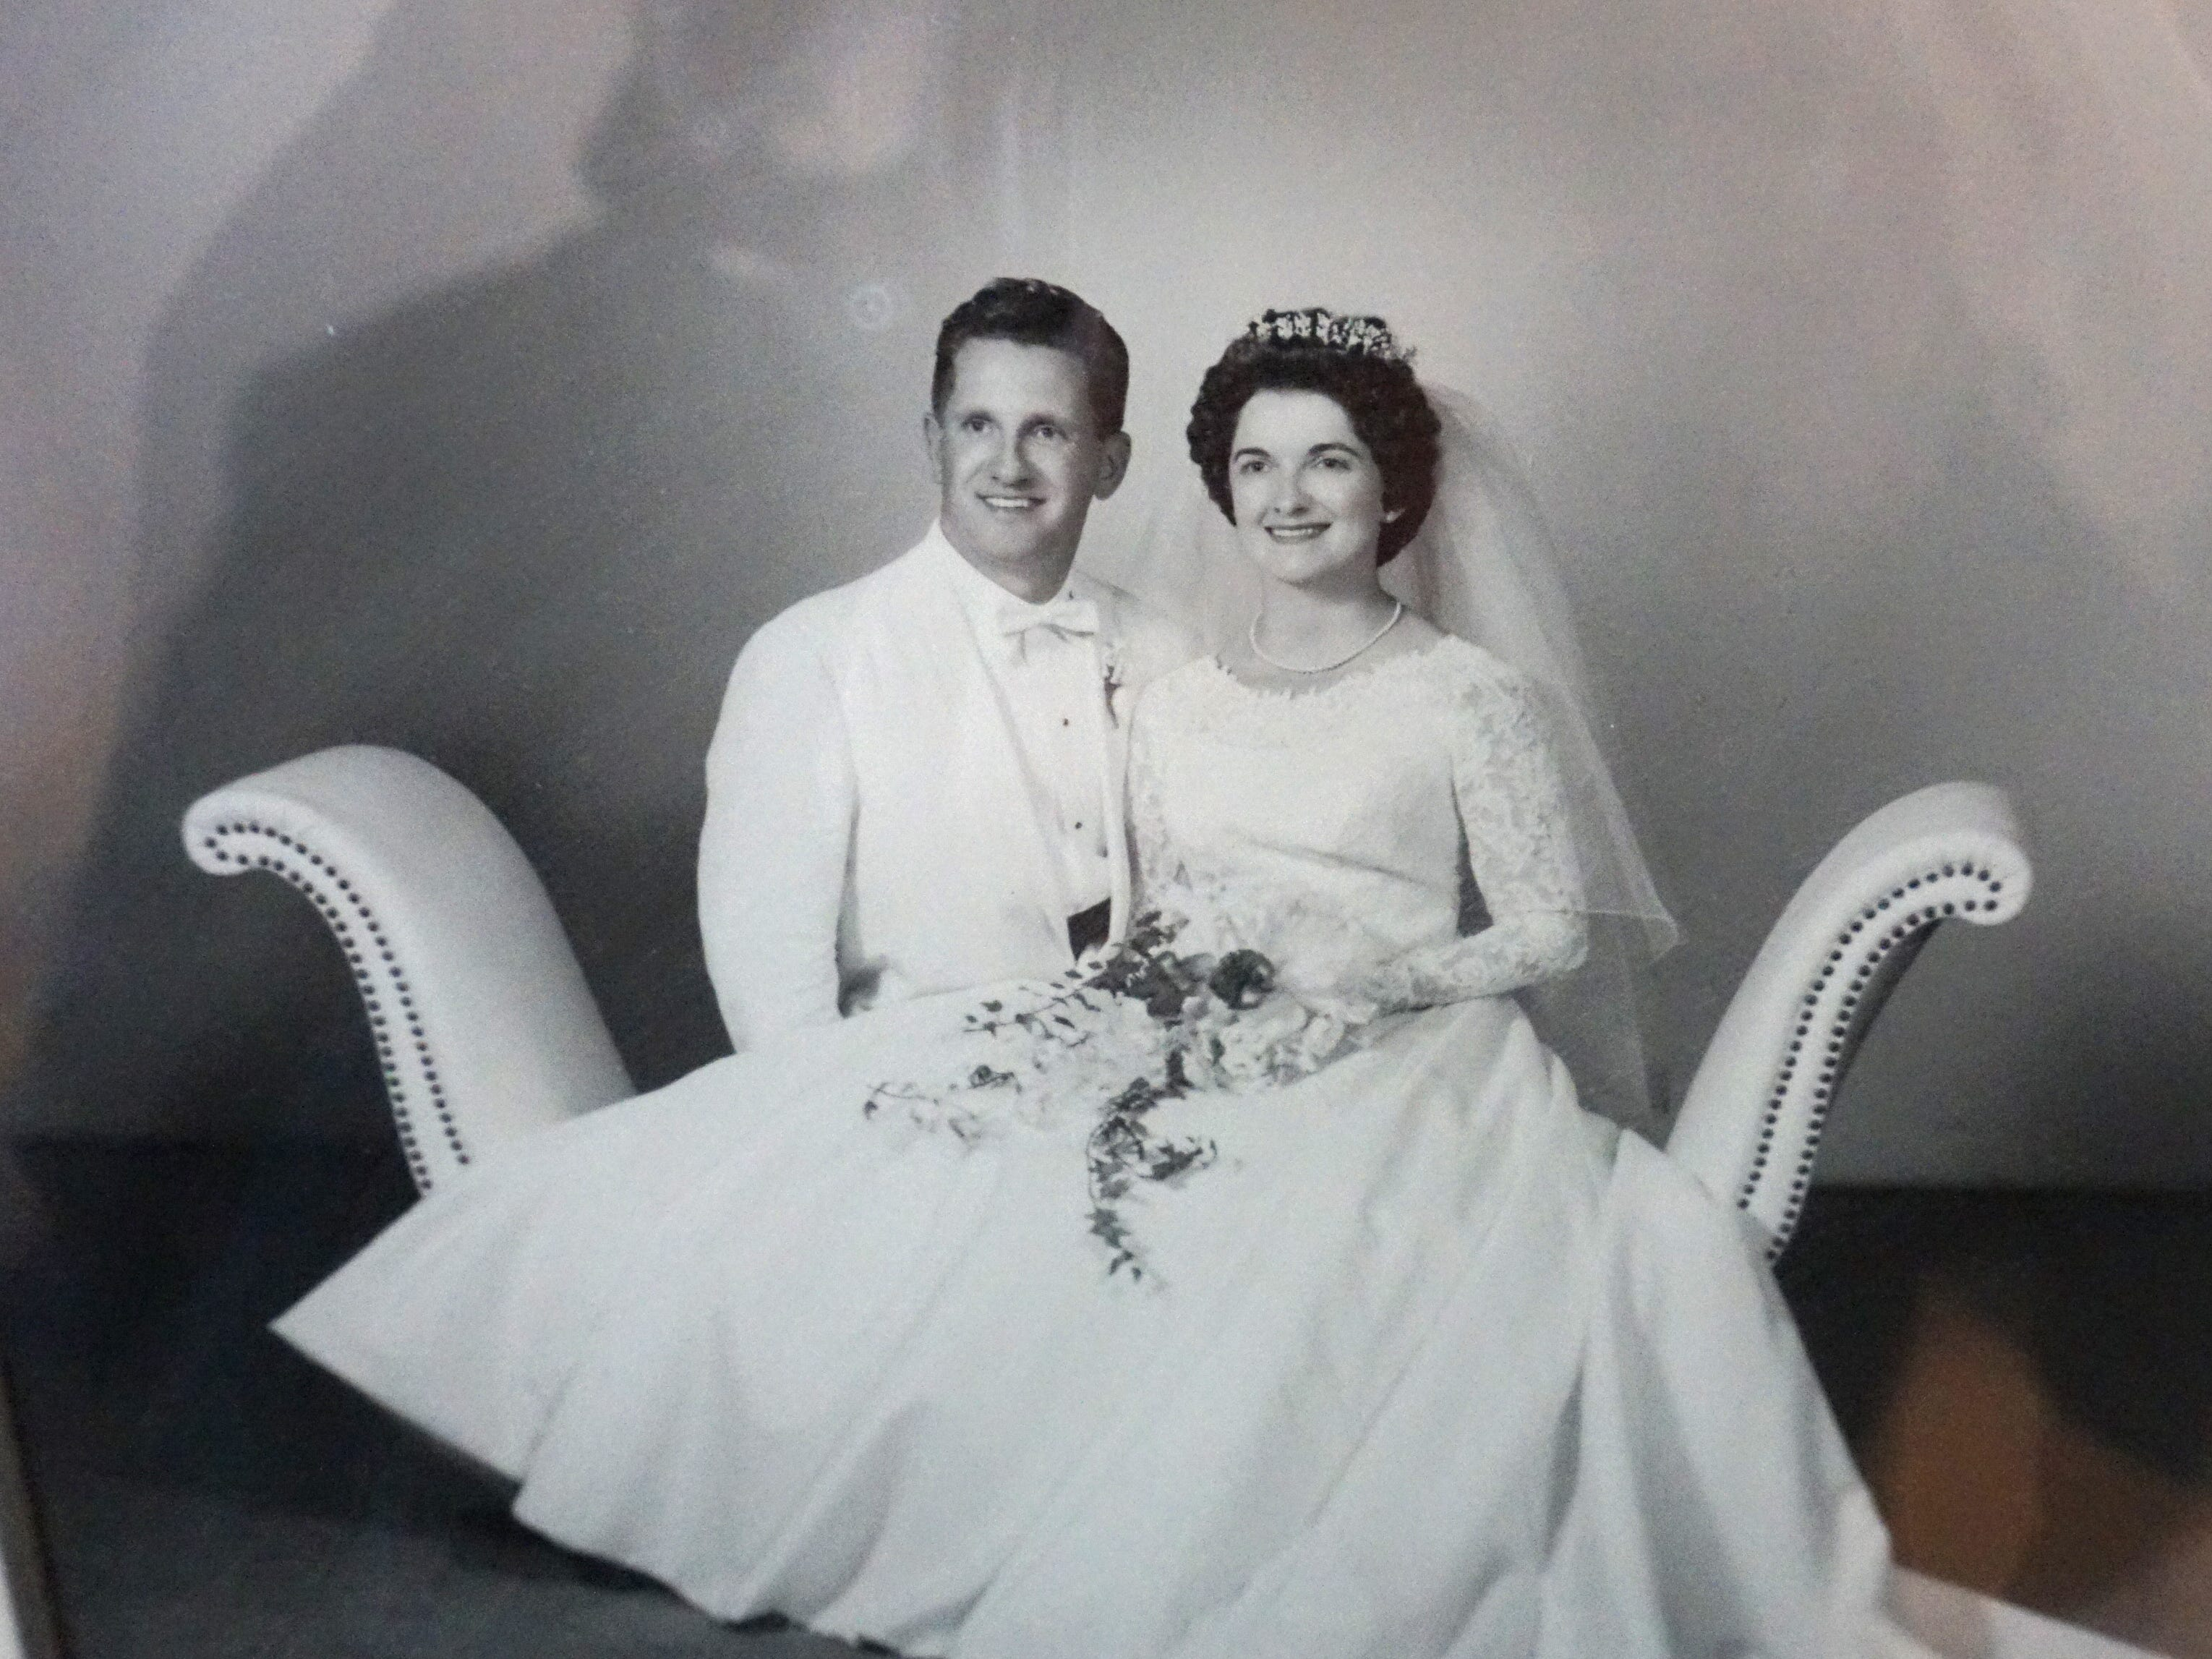 Bill and Helen Barz's wedding photo. The pair met in Detroit and danced their way into each other's hearts.